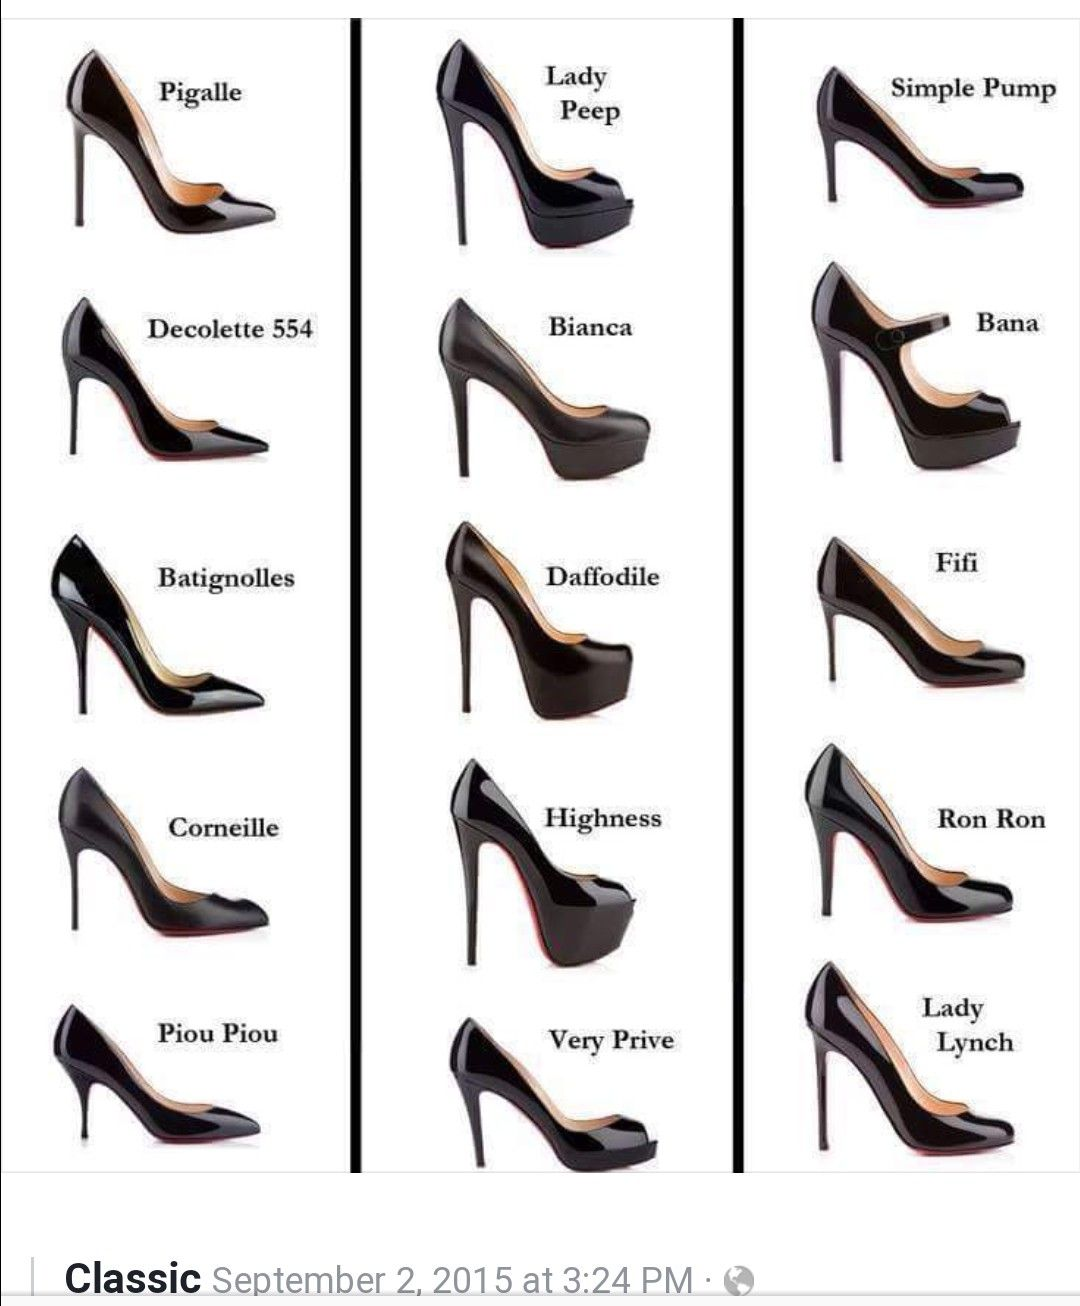 8b2d61422b1 There s a name for every heel even if it looks almost identical. There s no  such thing as just a plain black pump stiletto! - narrow womens shoes